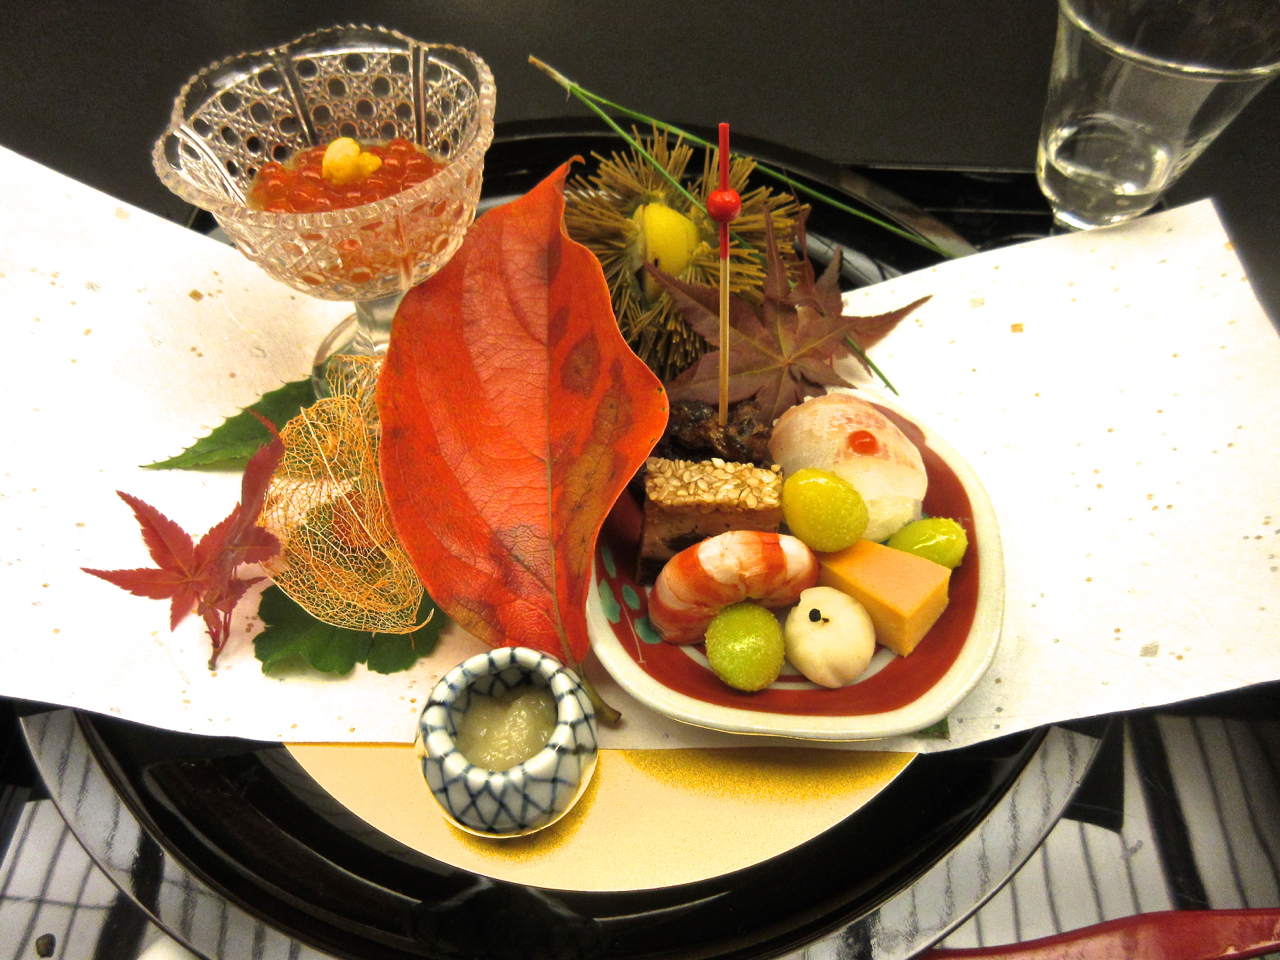 Bobbyjayonfood thoughts on japanese food presentation for Asian cuisine ppt